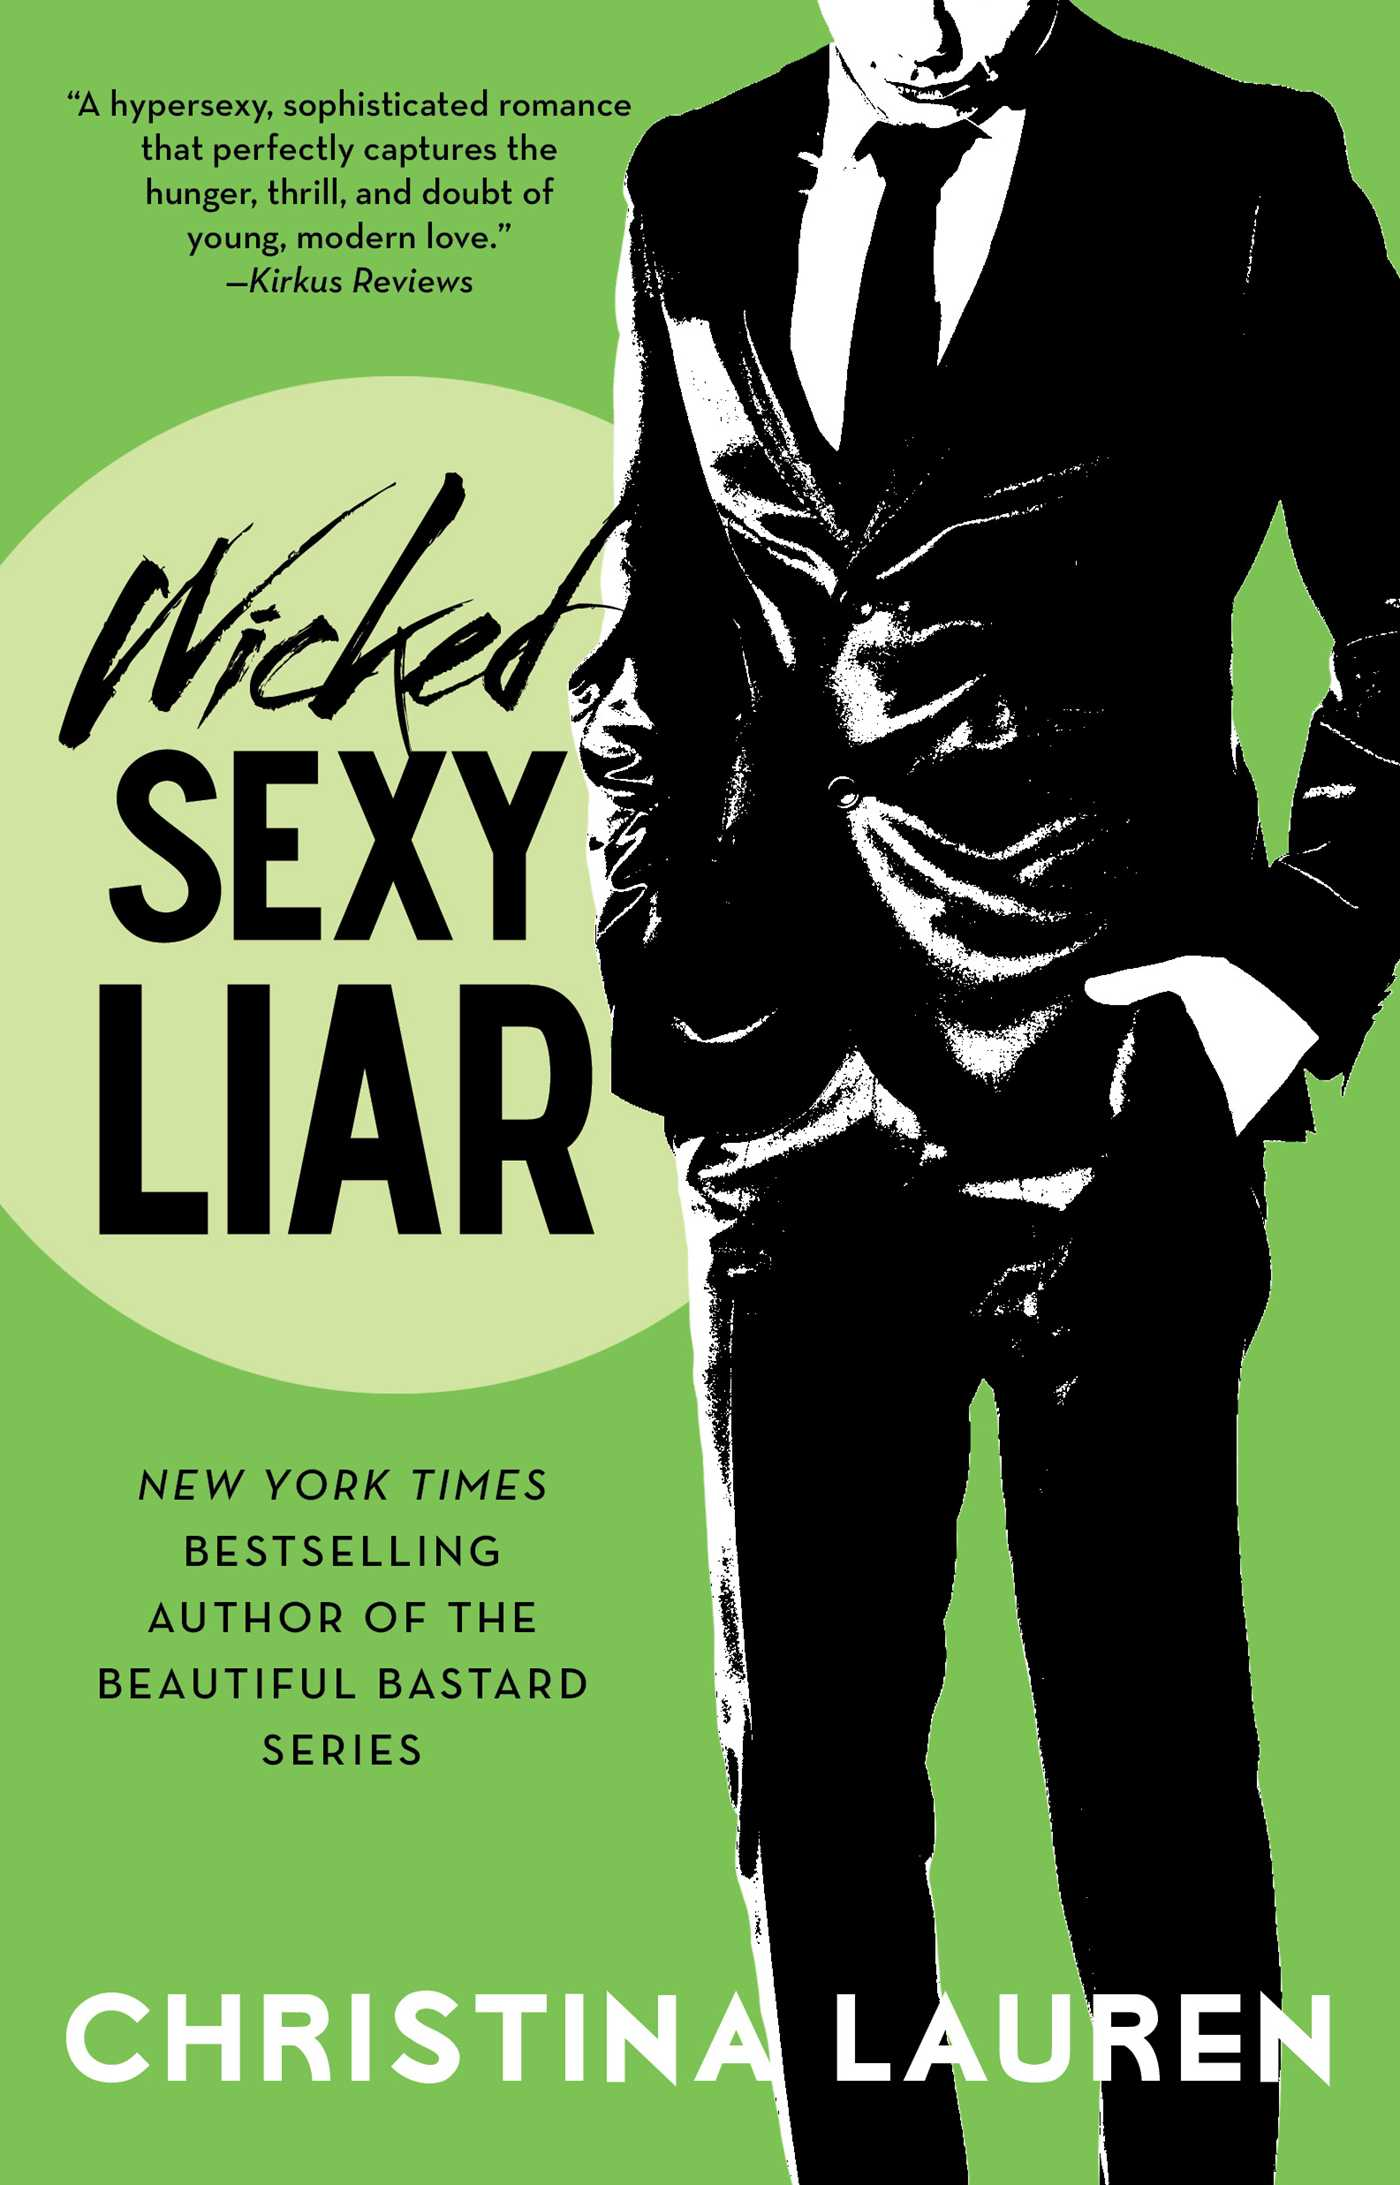 Wicked sexy liar 9781476777993 hr